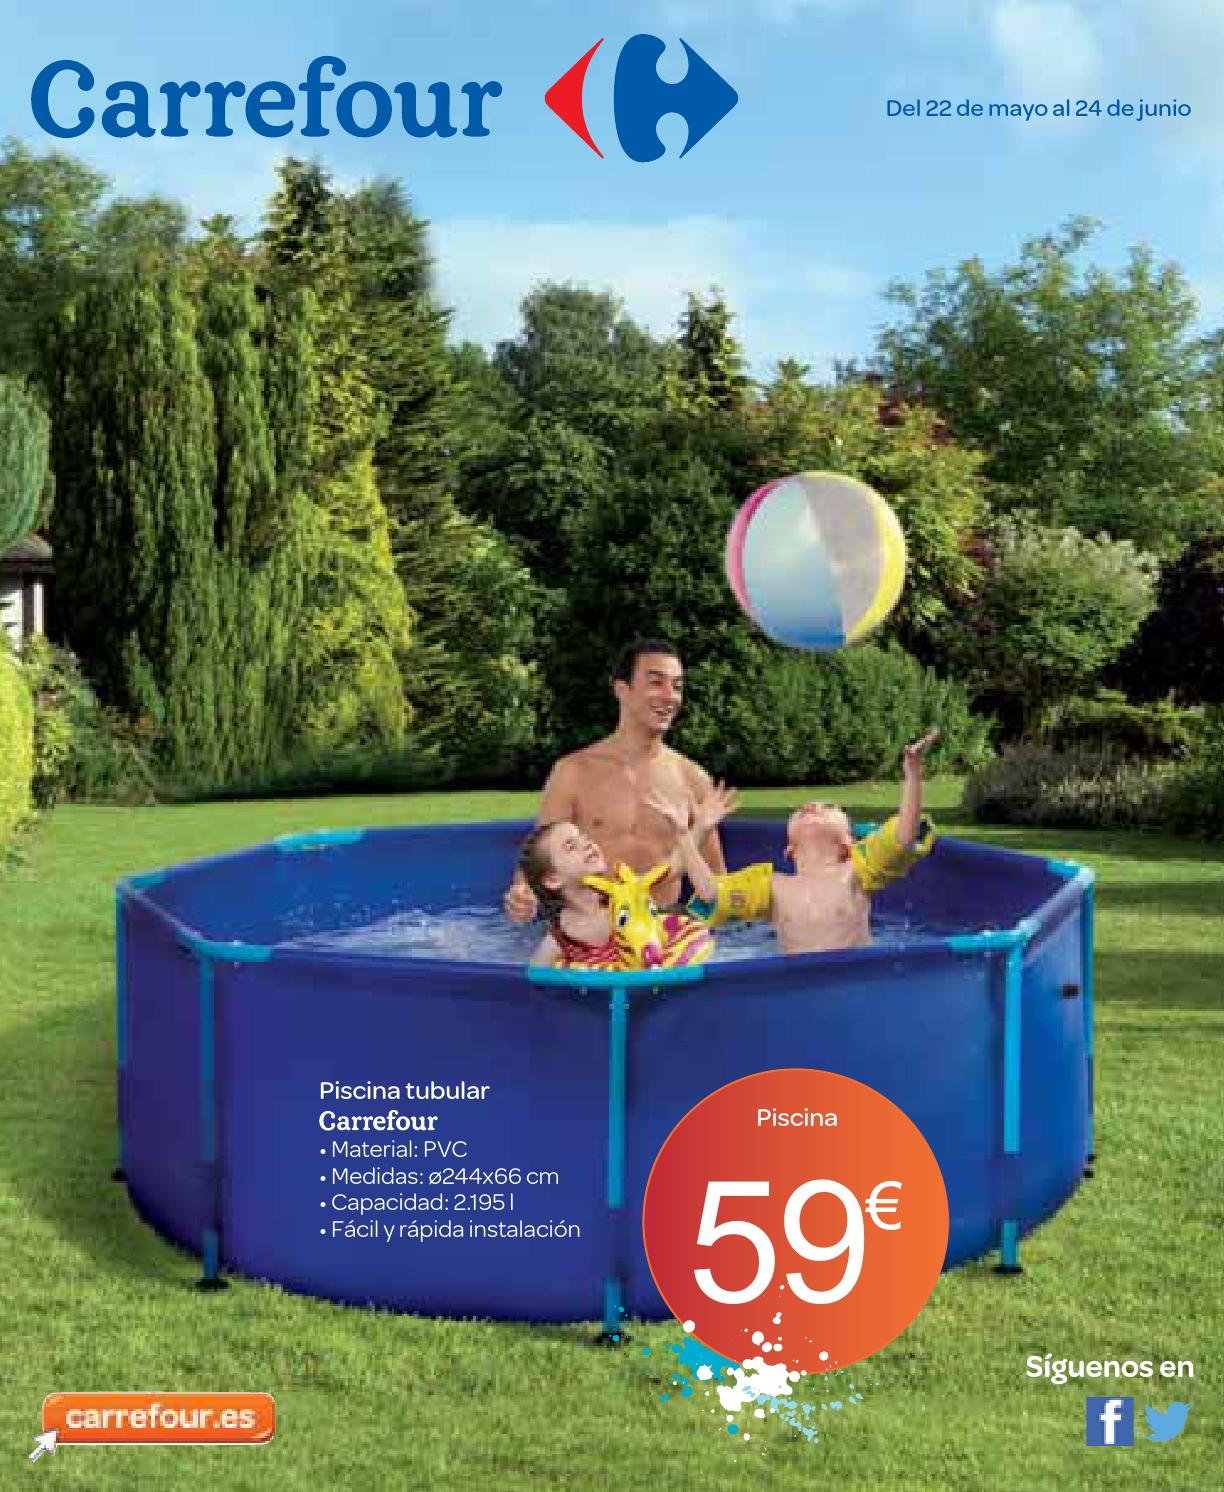 Piscina desmontable en carrefour for Carrefour piscina hinchable